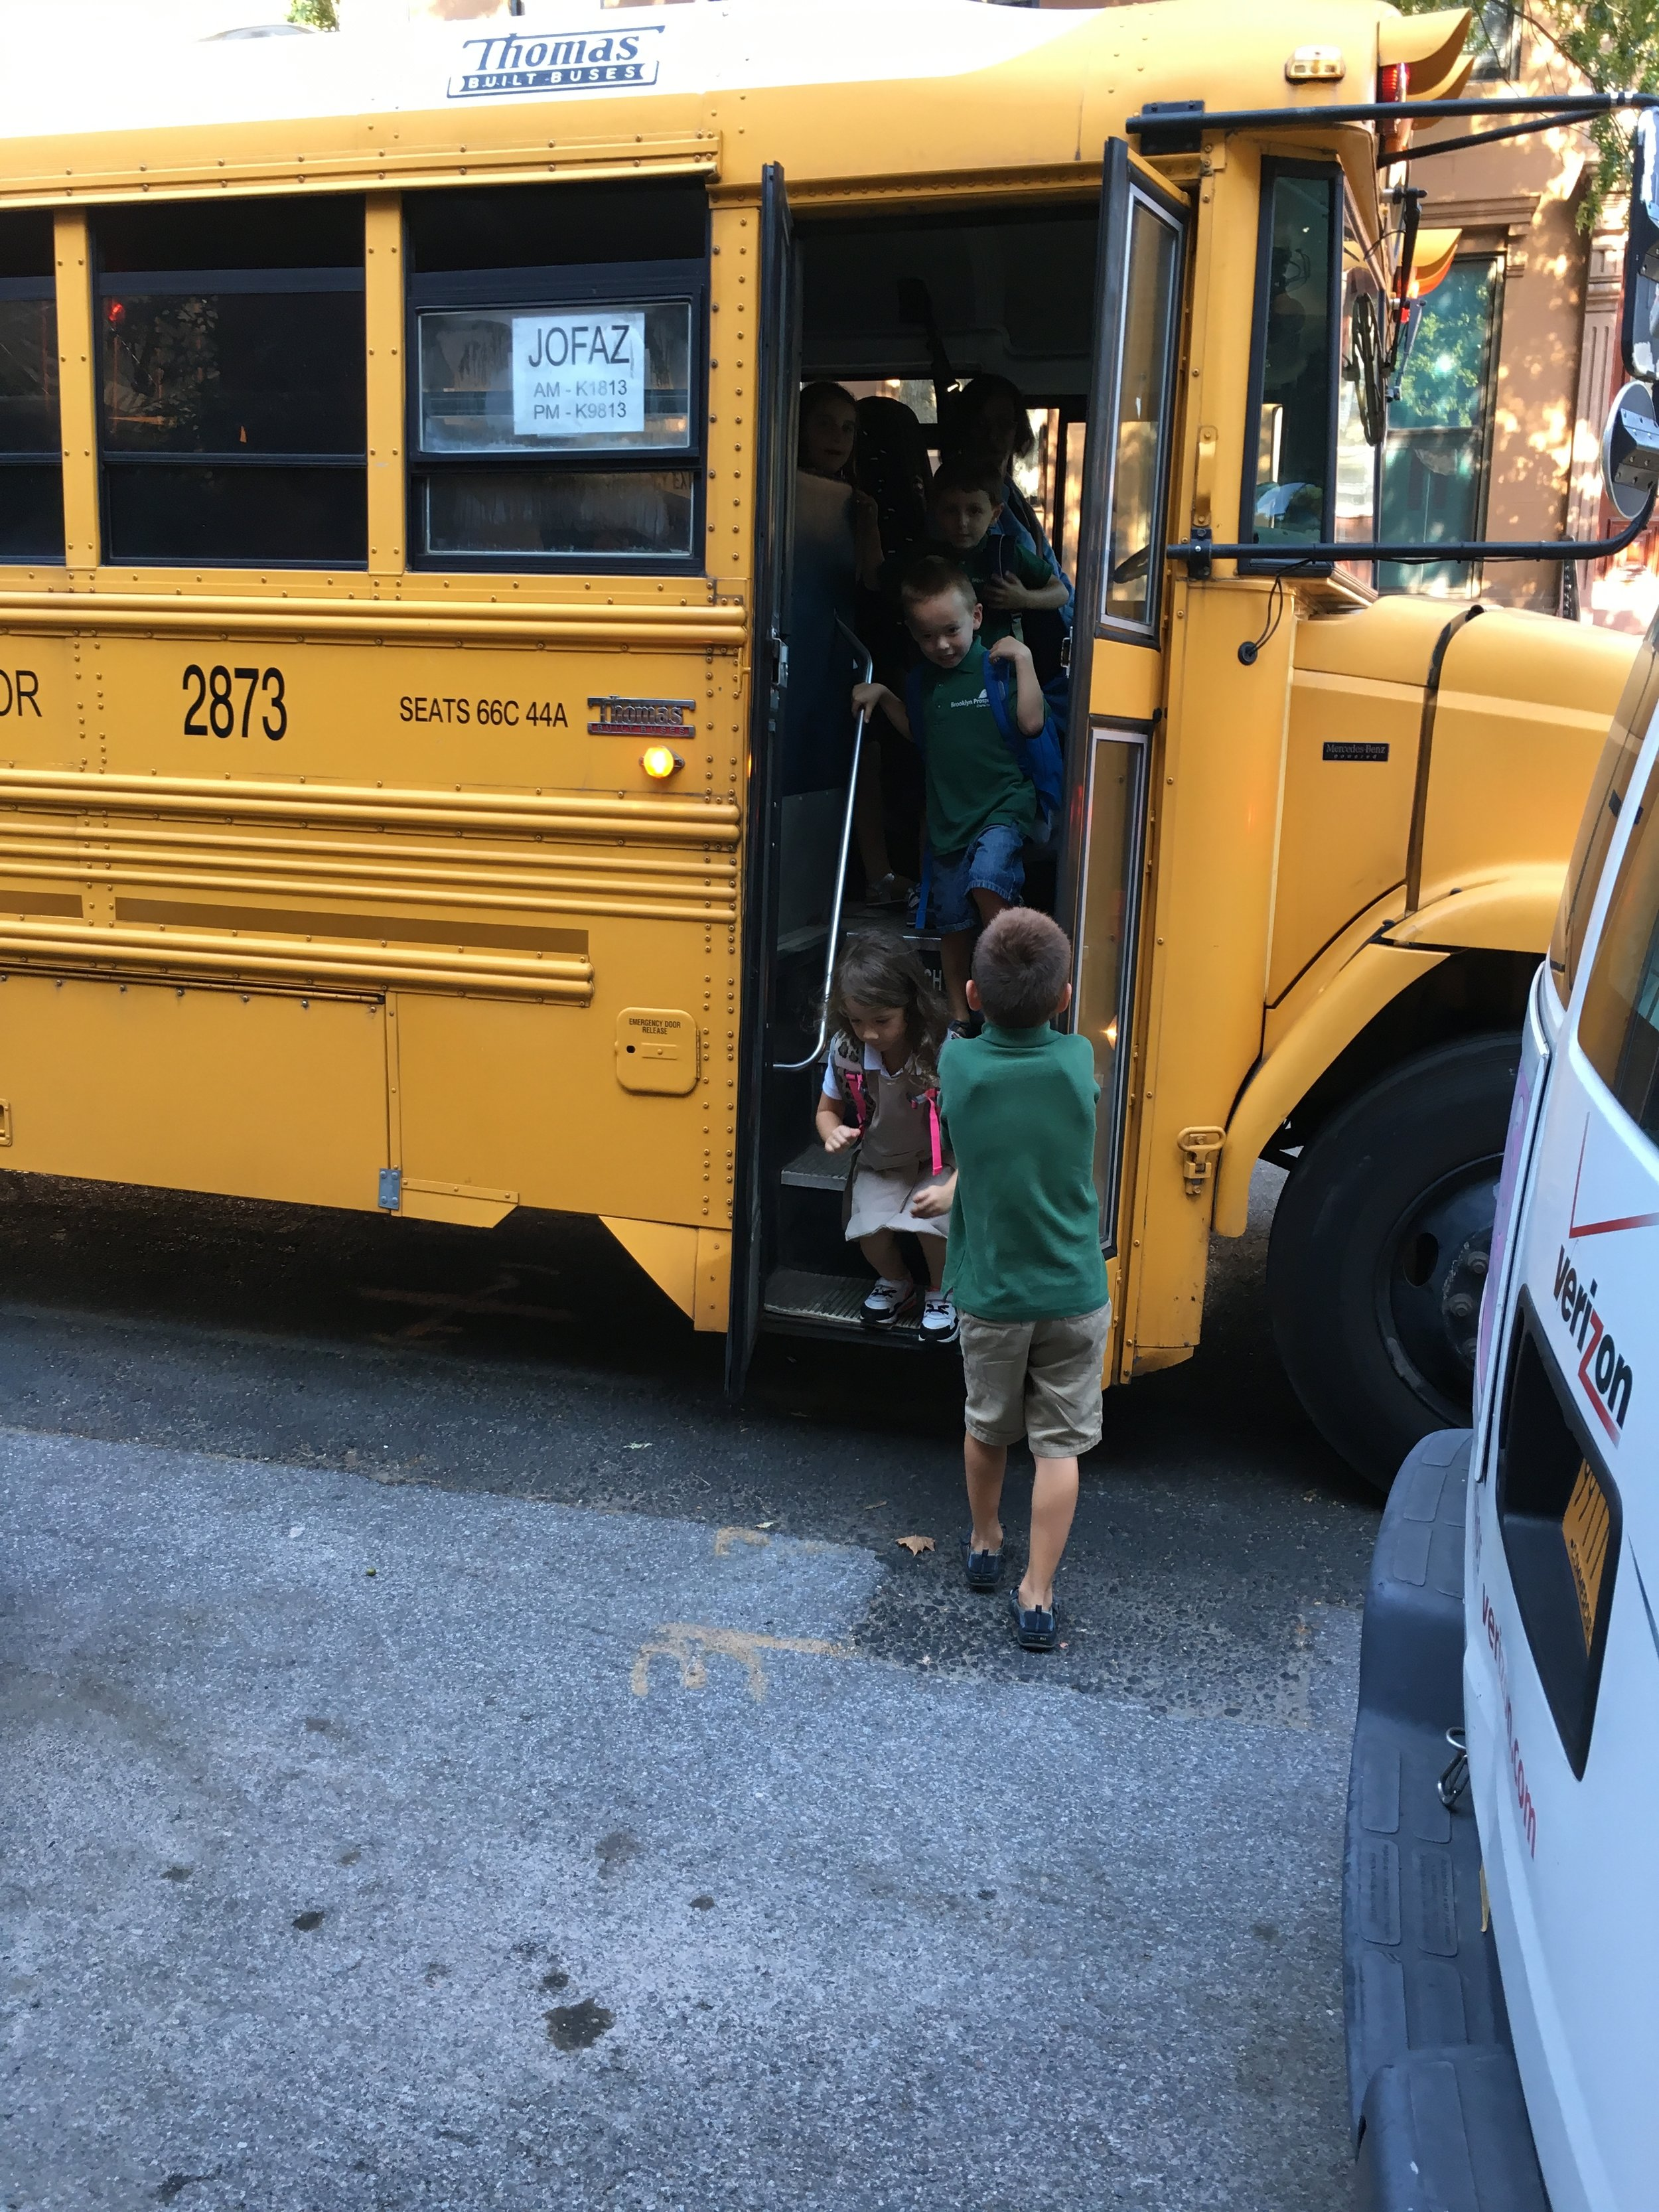 Things move fast at the school bus pick-up too.